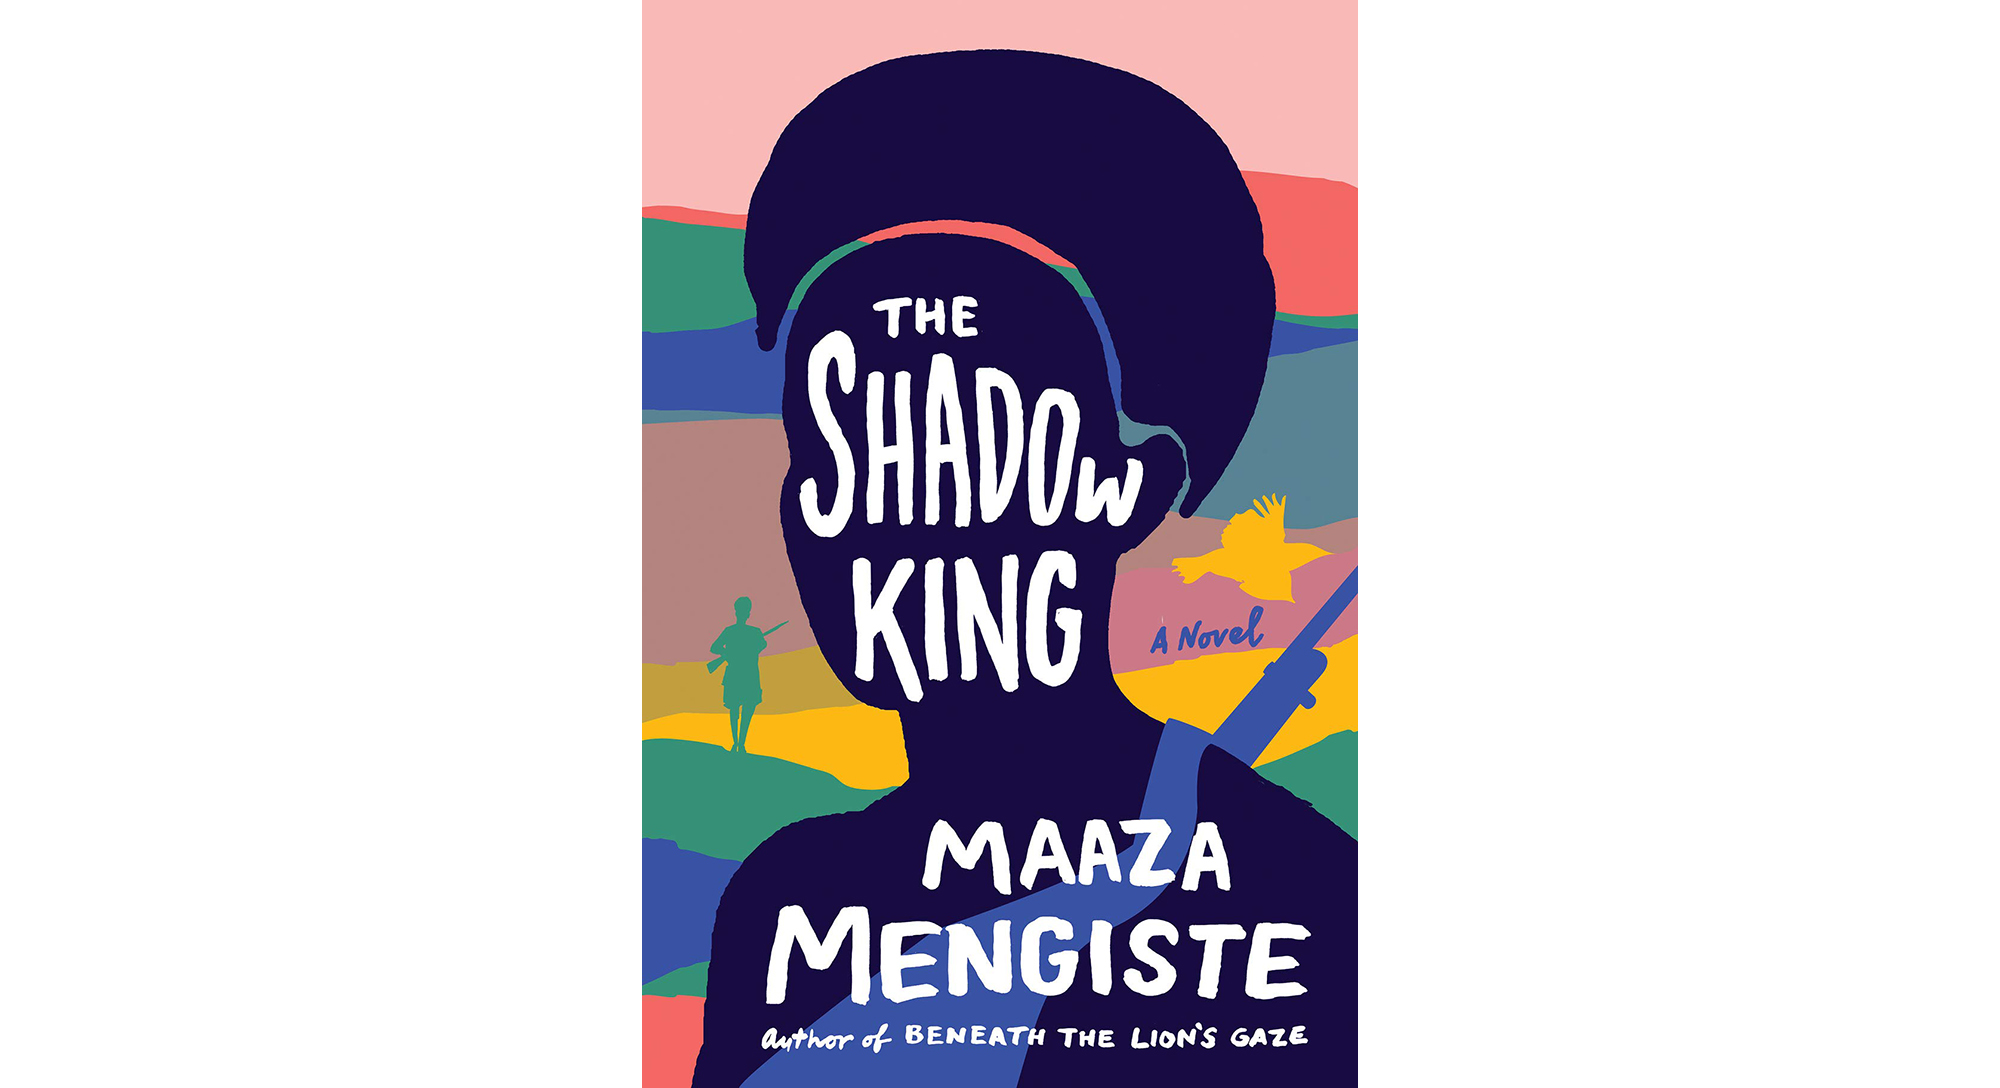 Cover of The Shadow King, by Maaza Mengiste